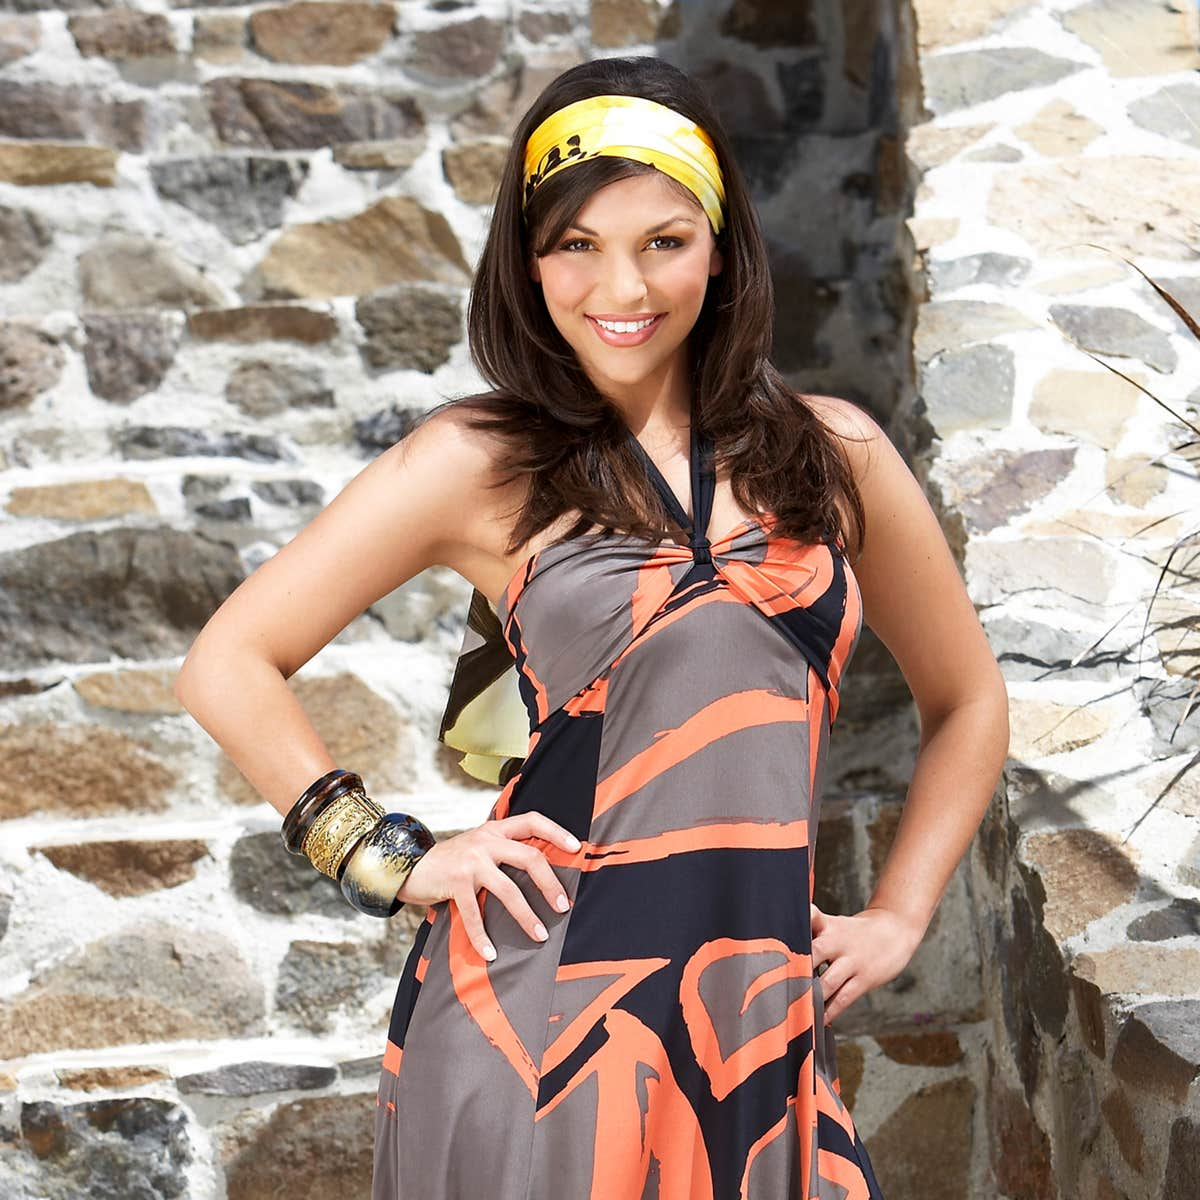 Deanna Pappas Bachelorette History And Life Now In 2020